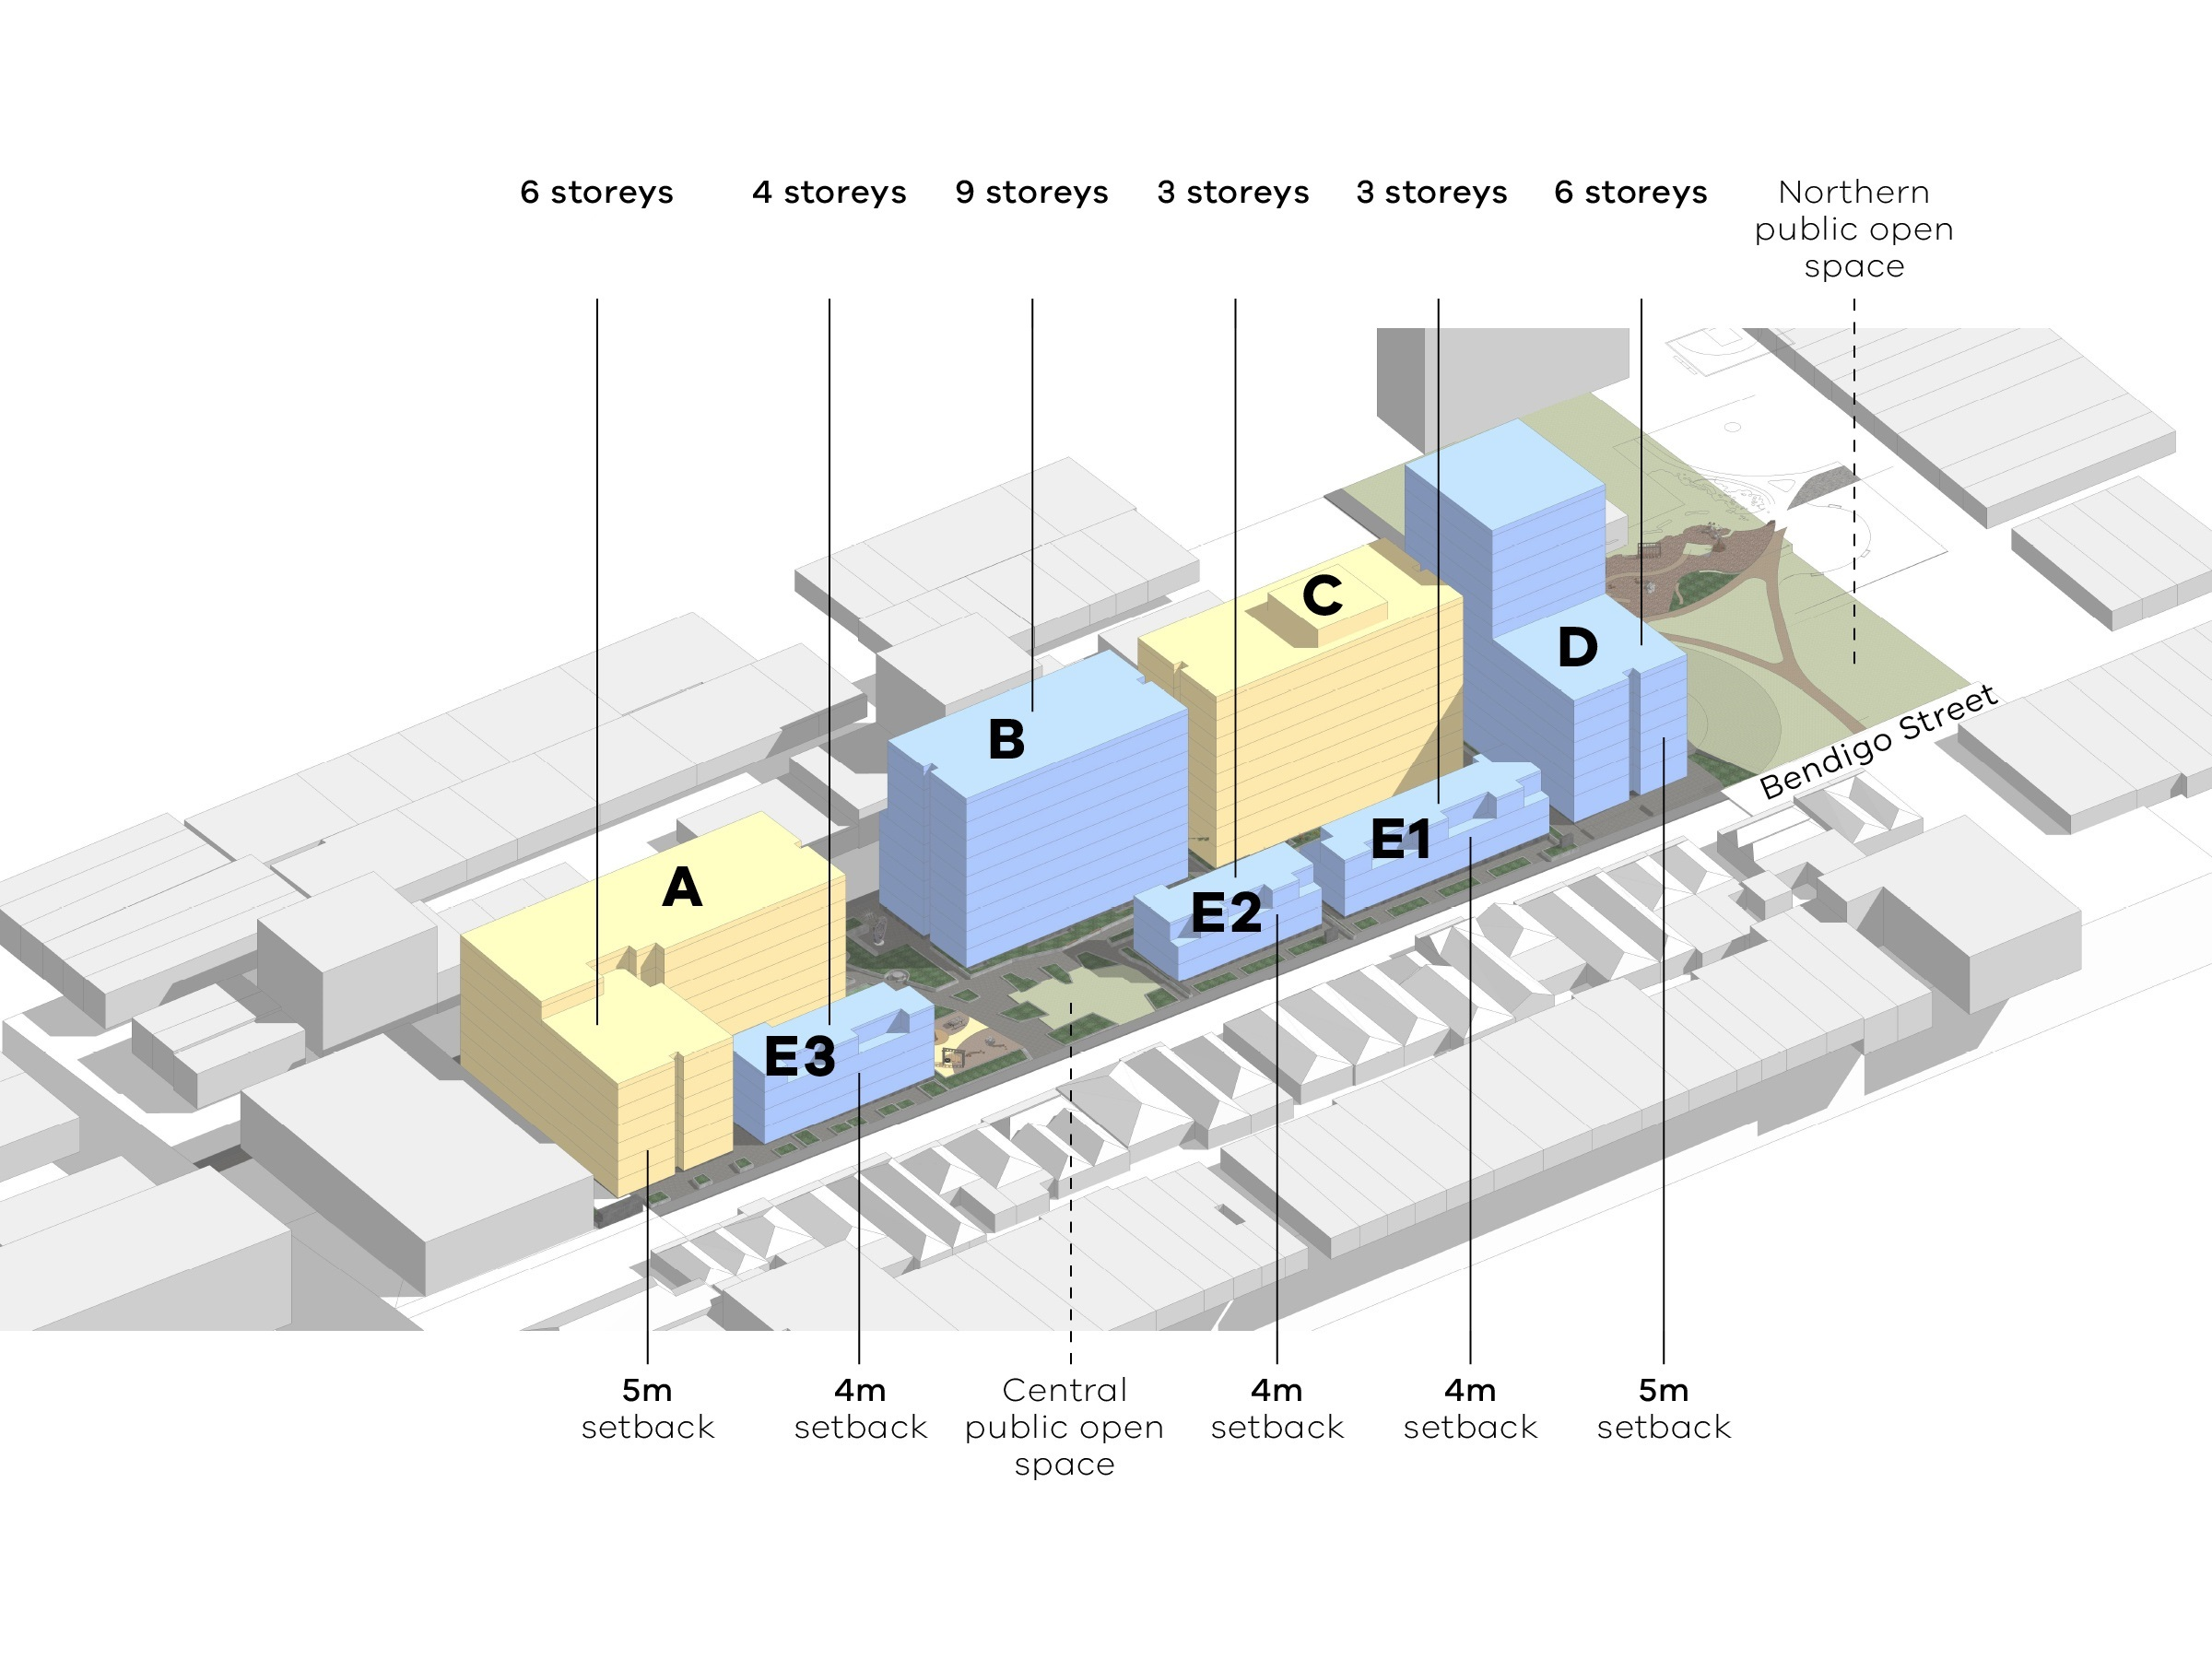 Diagram showing the heights and setbacks of the new development as seen from Bendigo Street. Building A has 6 storeys on Bendigo Street. The setback from Bendigo Street is 5 metres. Building E3 has 4 storeys. The setback from Bendigo Street is 4 metres. Building B is 9 storeys. The central public open space and building E2 are between building B and Bendigo Street. Building E2 is 3 storeys. The setback from Bendigo Street is 4 metres. Building E1 has 3 storeys. The setback from Bendigo Street is 4 metres. Building D is located next to the northern public open space and has 6 storeys on Bendigo Street. The setback from Bendigo Street is 5 metres. 